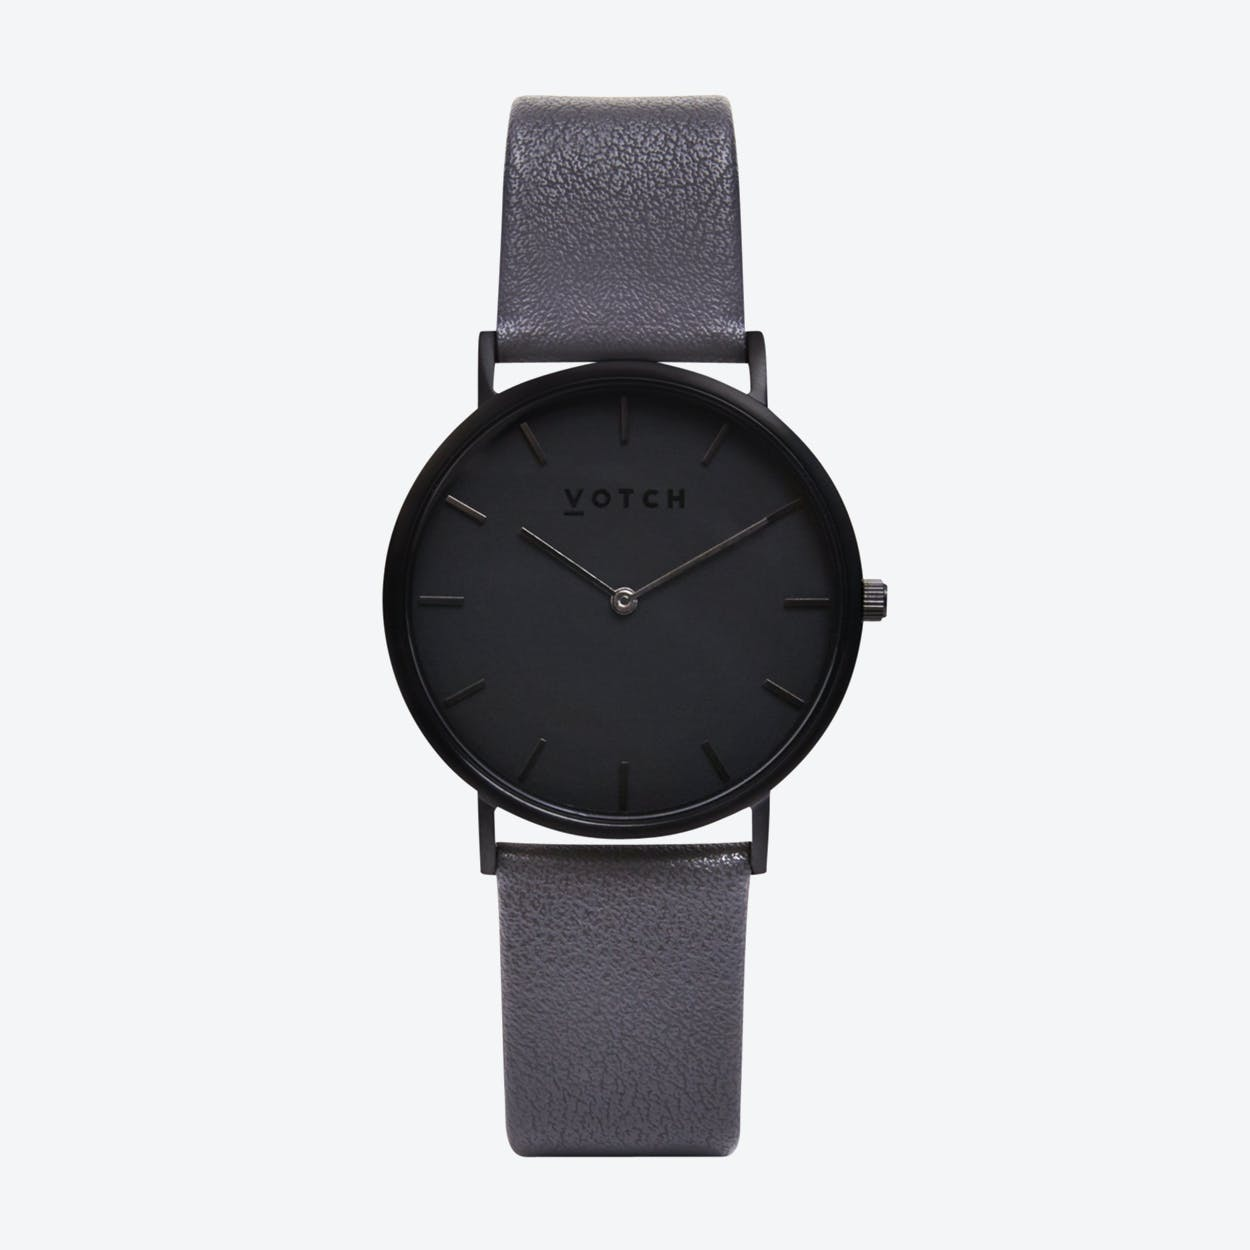 Classic Watch in Black with Black Face and Dark Grey Vegan Leather Strap, 38mm